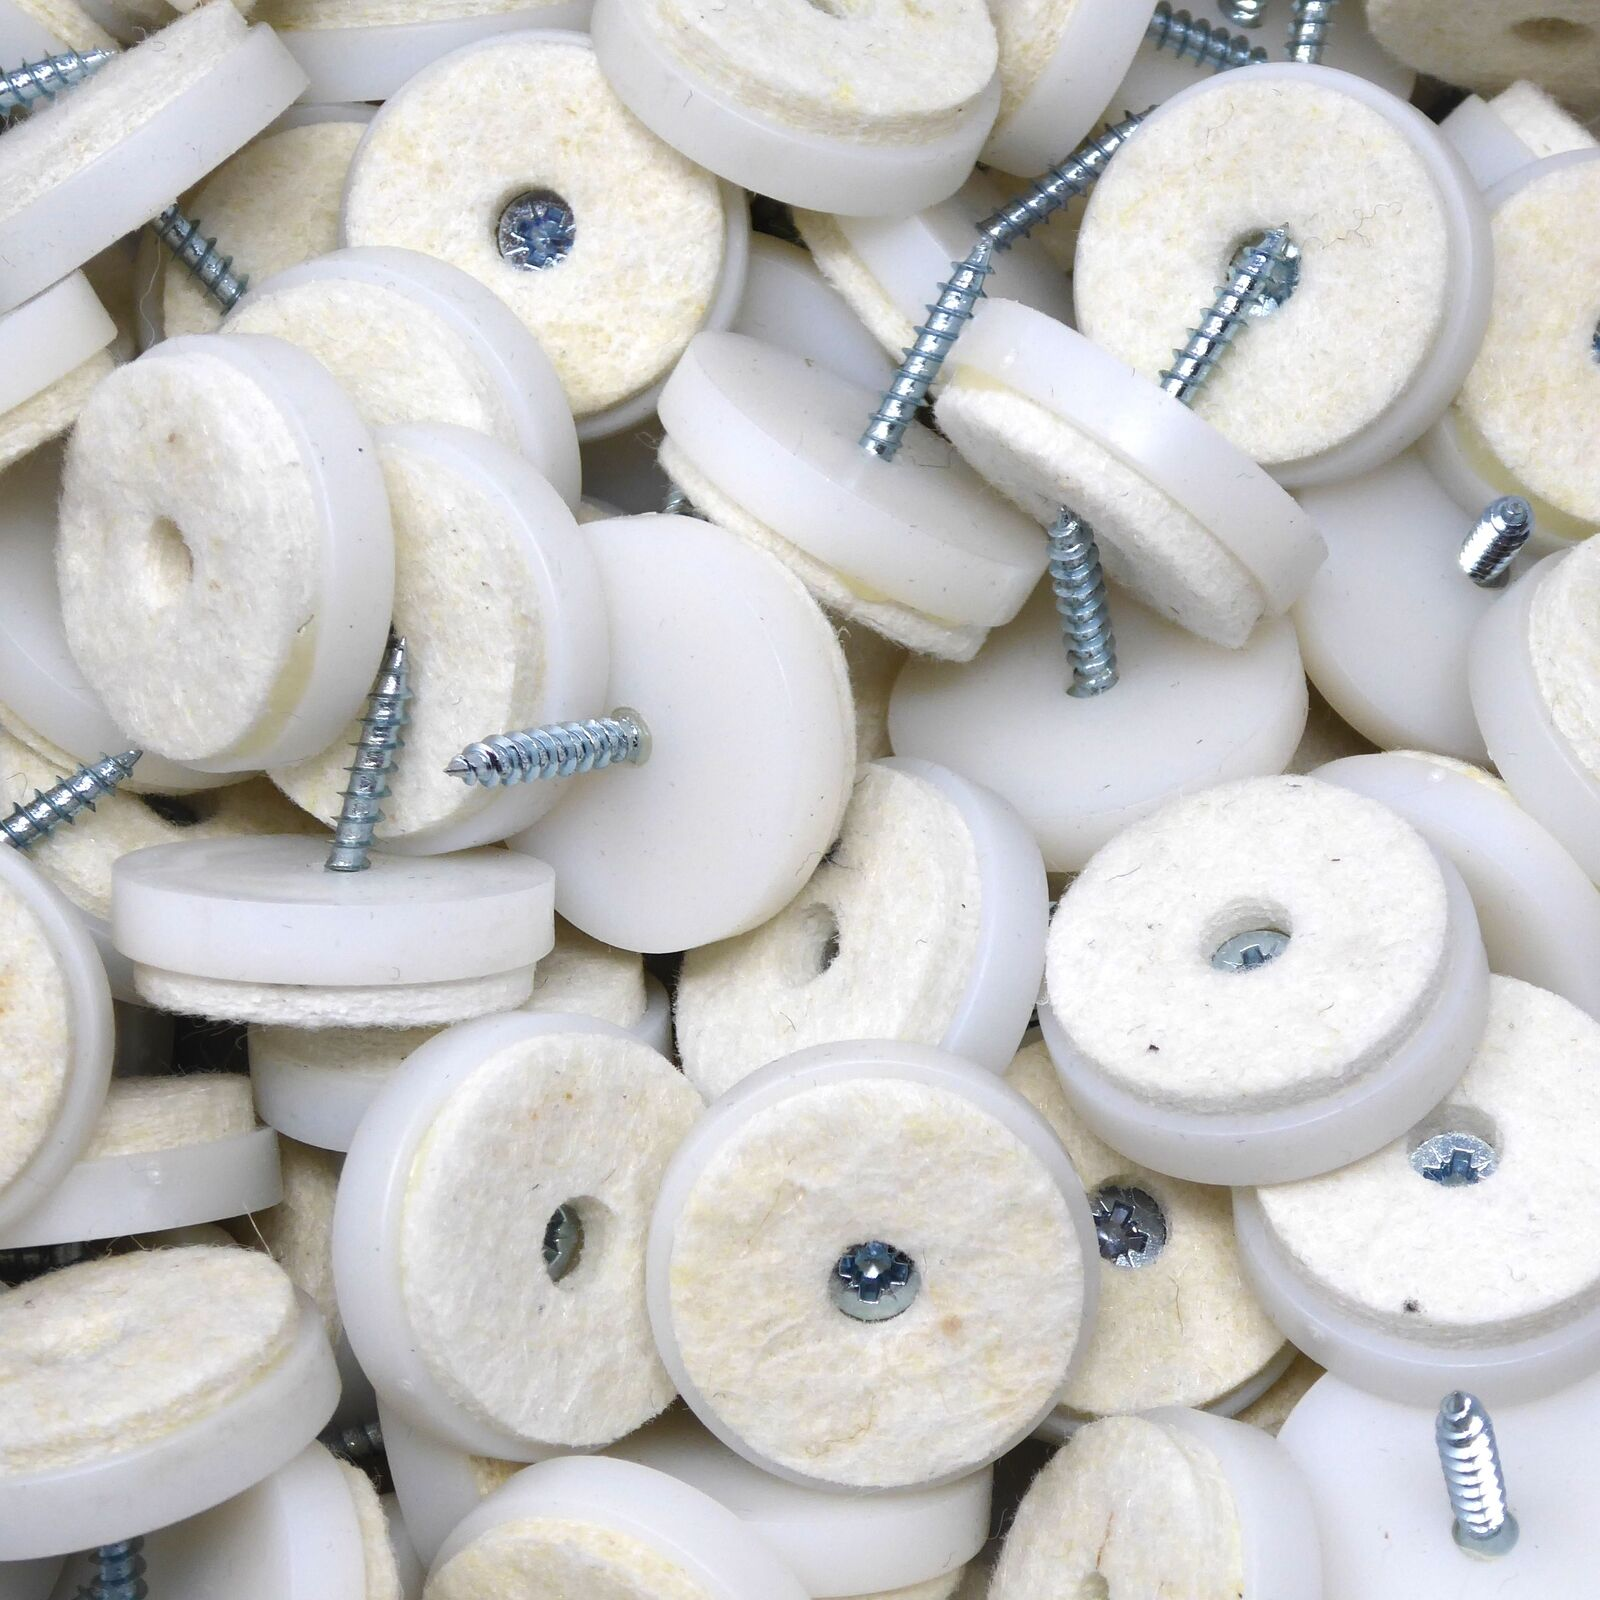 100 x Felt-pads with screws   Ø 1,1'' (Ø 28 mm)   Weiß   round   Premium qualit